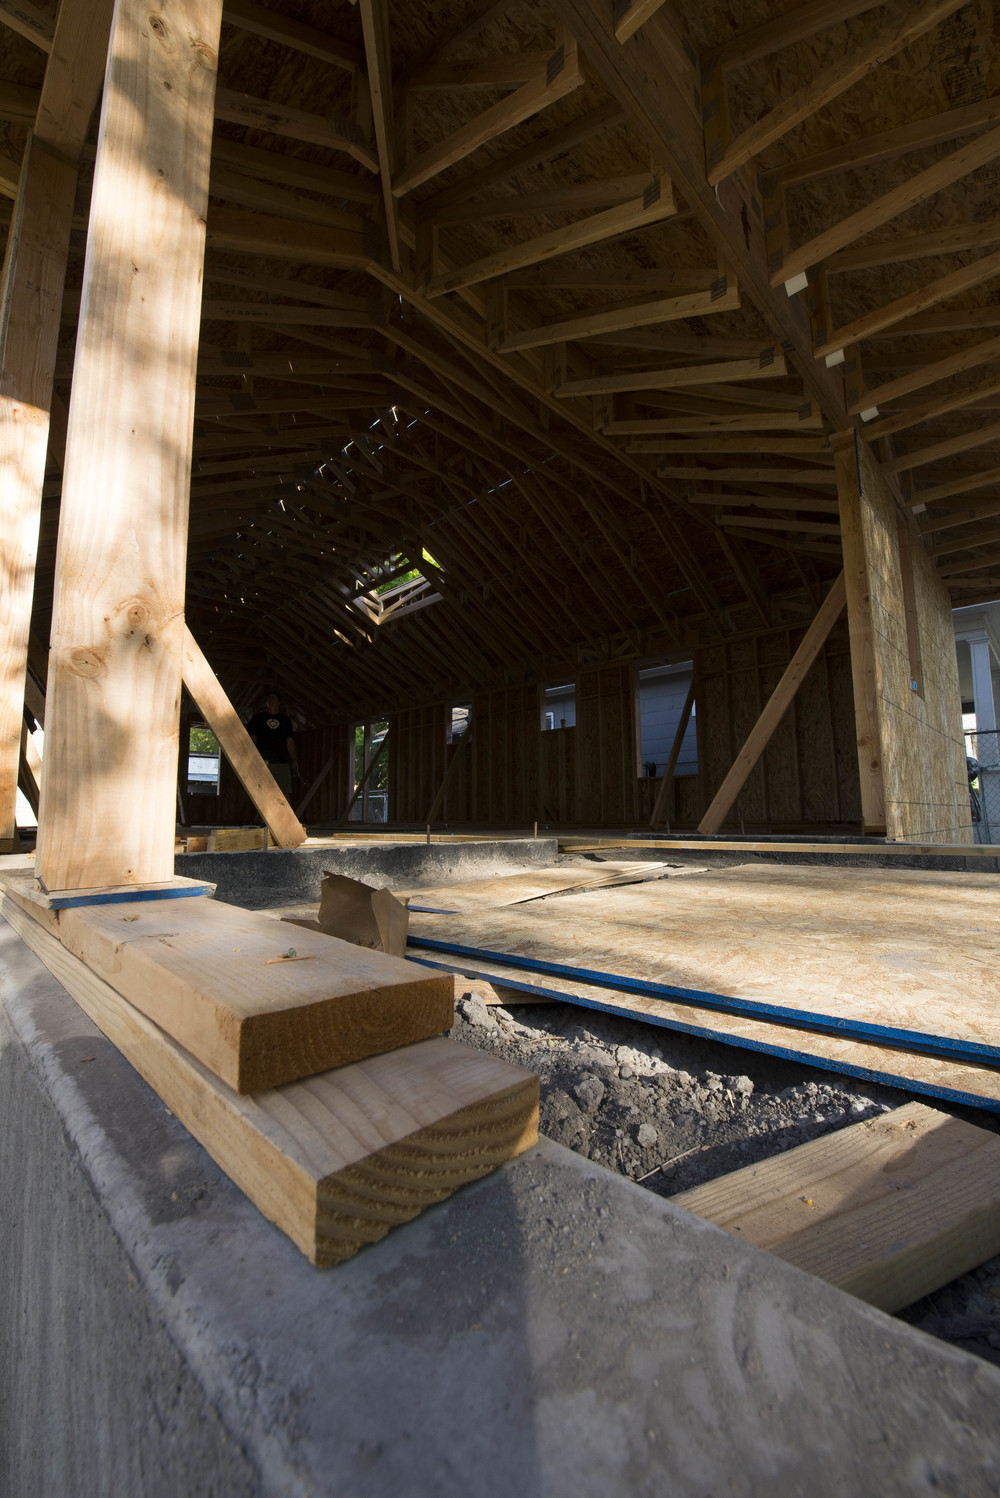 Raw materials: Concrete, wood, and steel